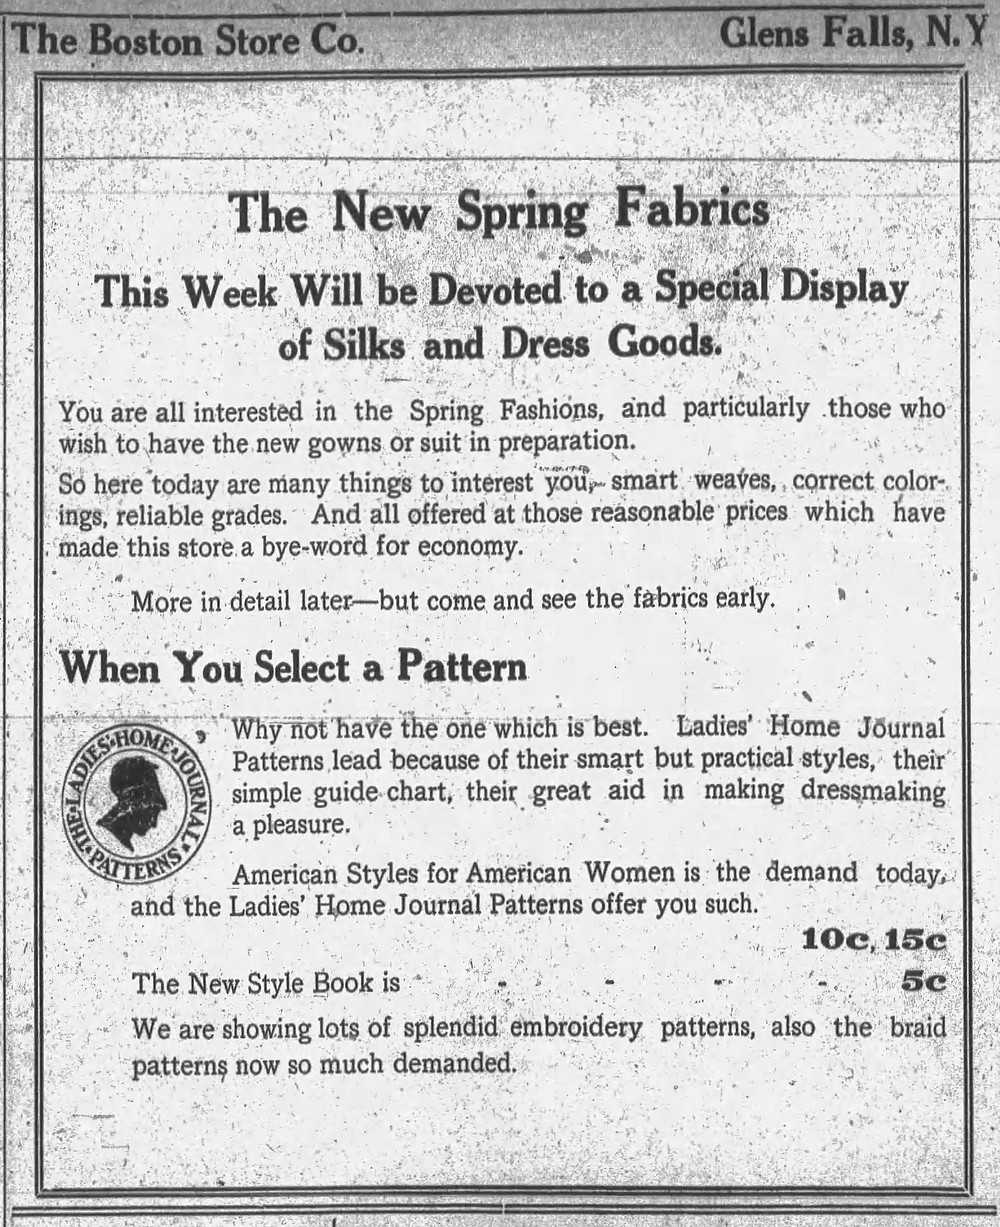 The Boston Store Co. advertised embroidery patterns throughout the early 20th century. Post-Star (Glens Falls, NY) March 15, 1910.